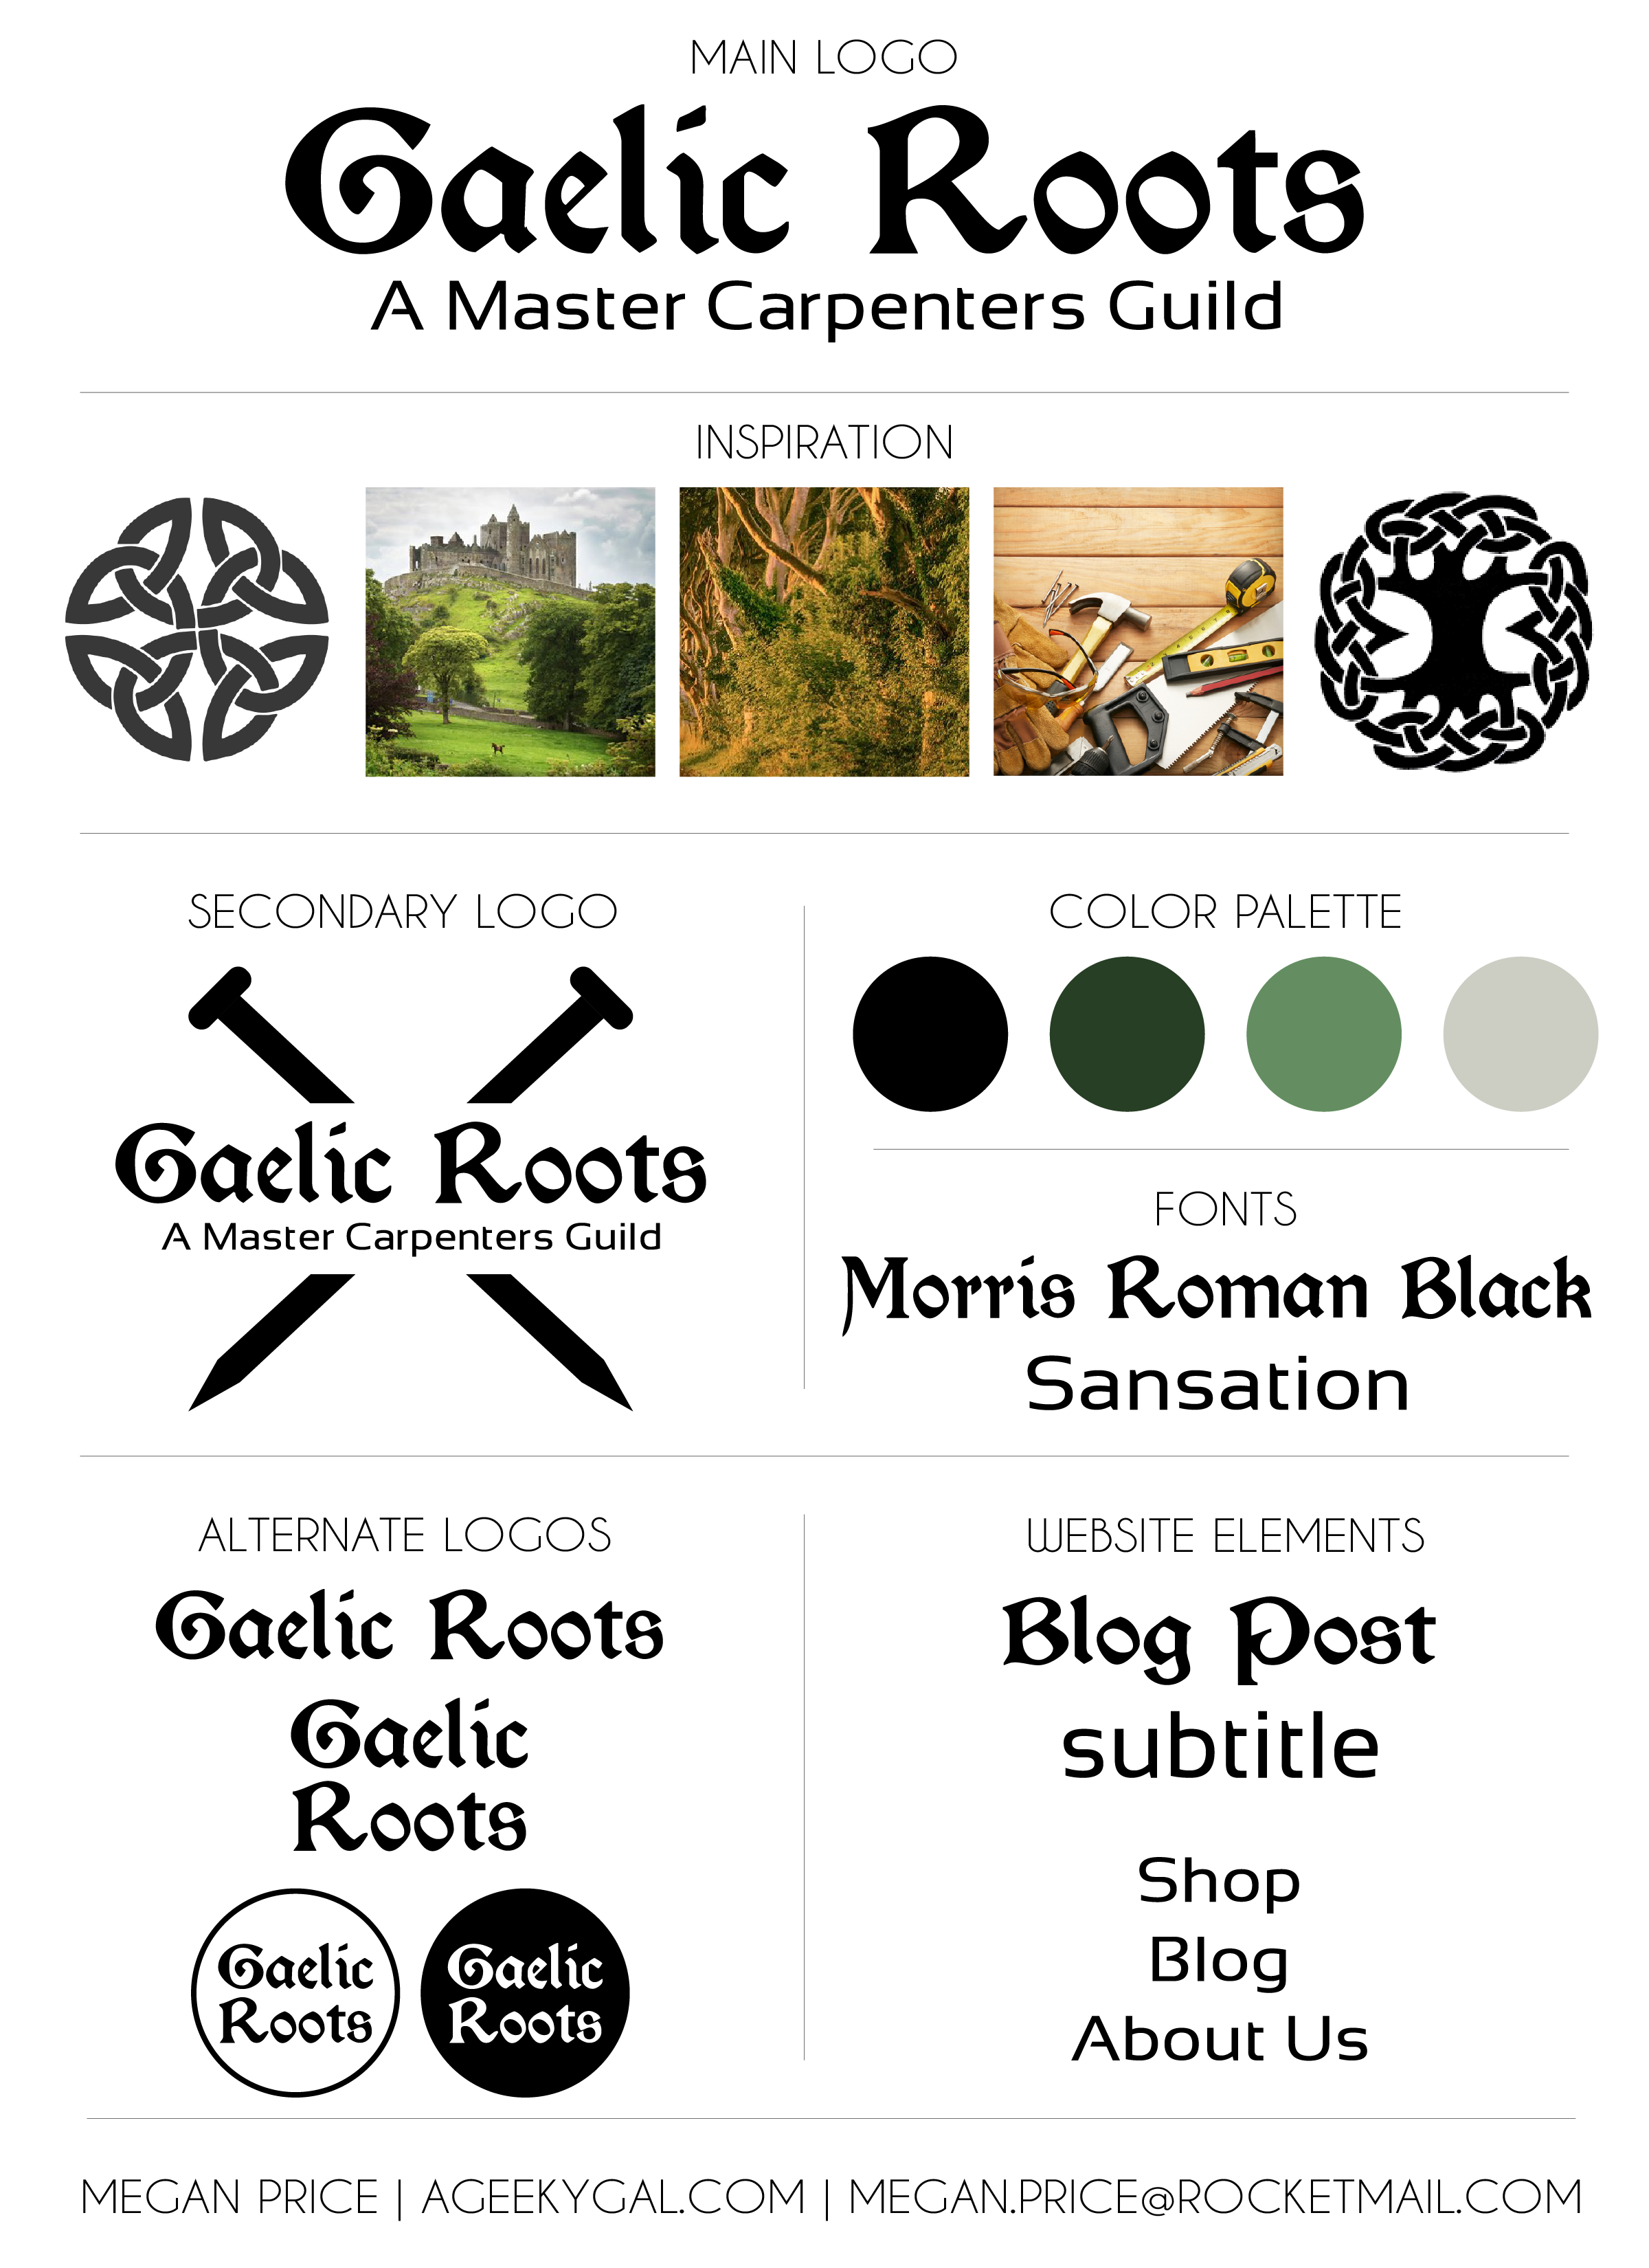 GaelicRoots_LogoDesigns_Official Board.png